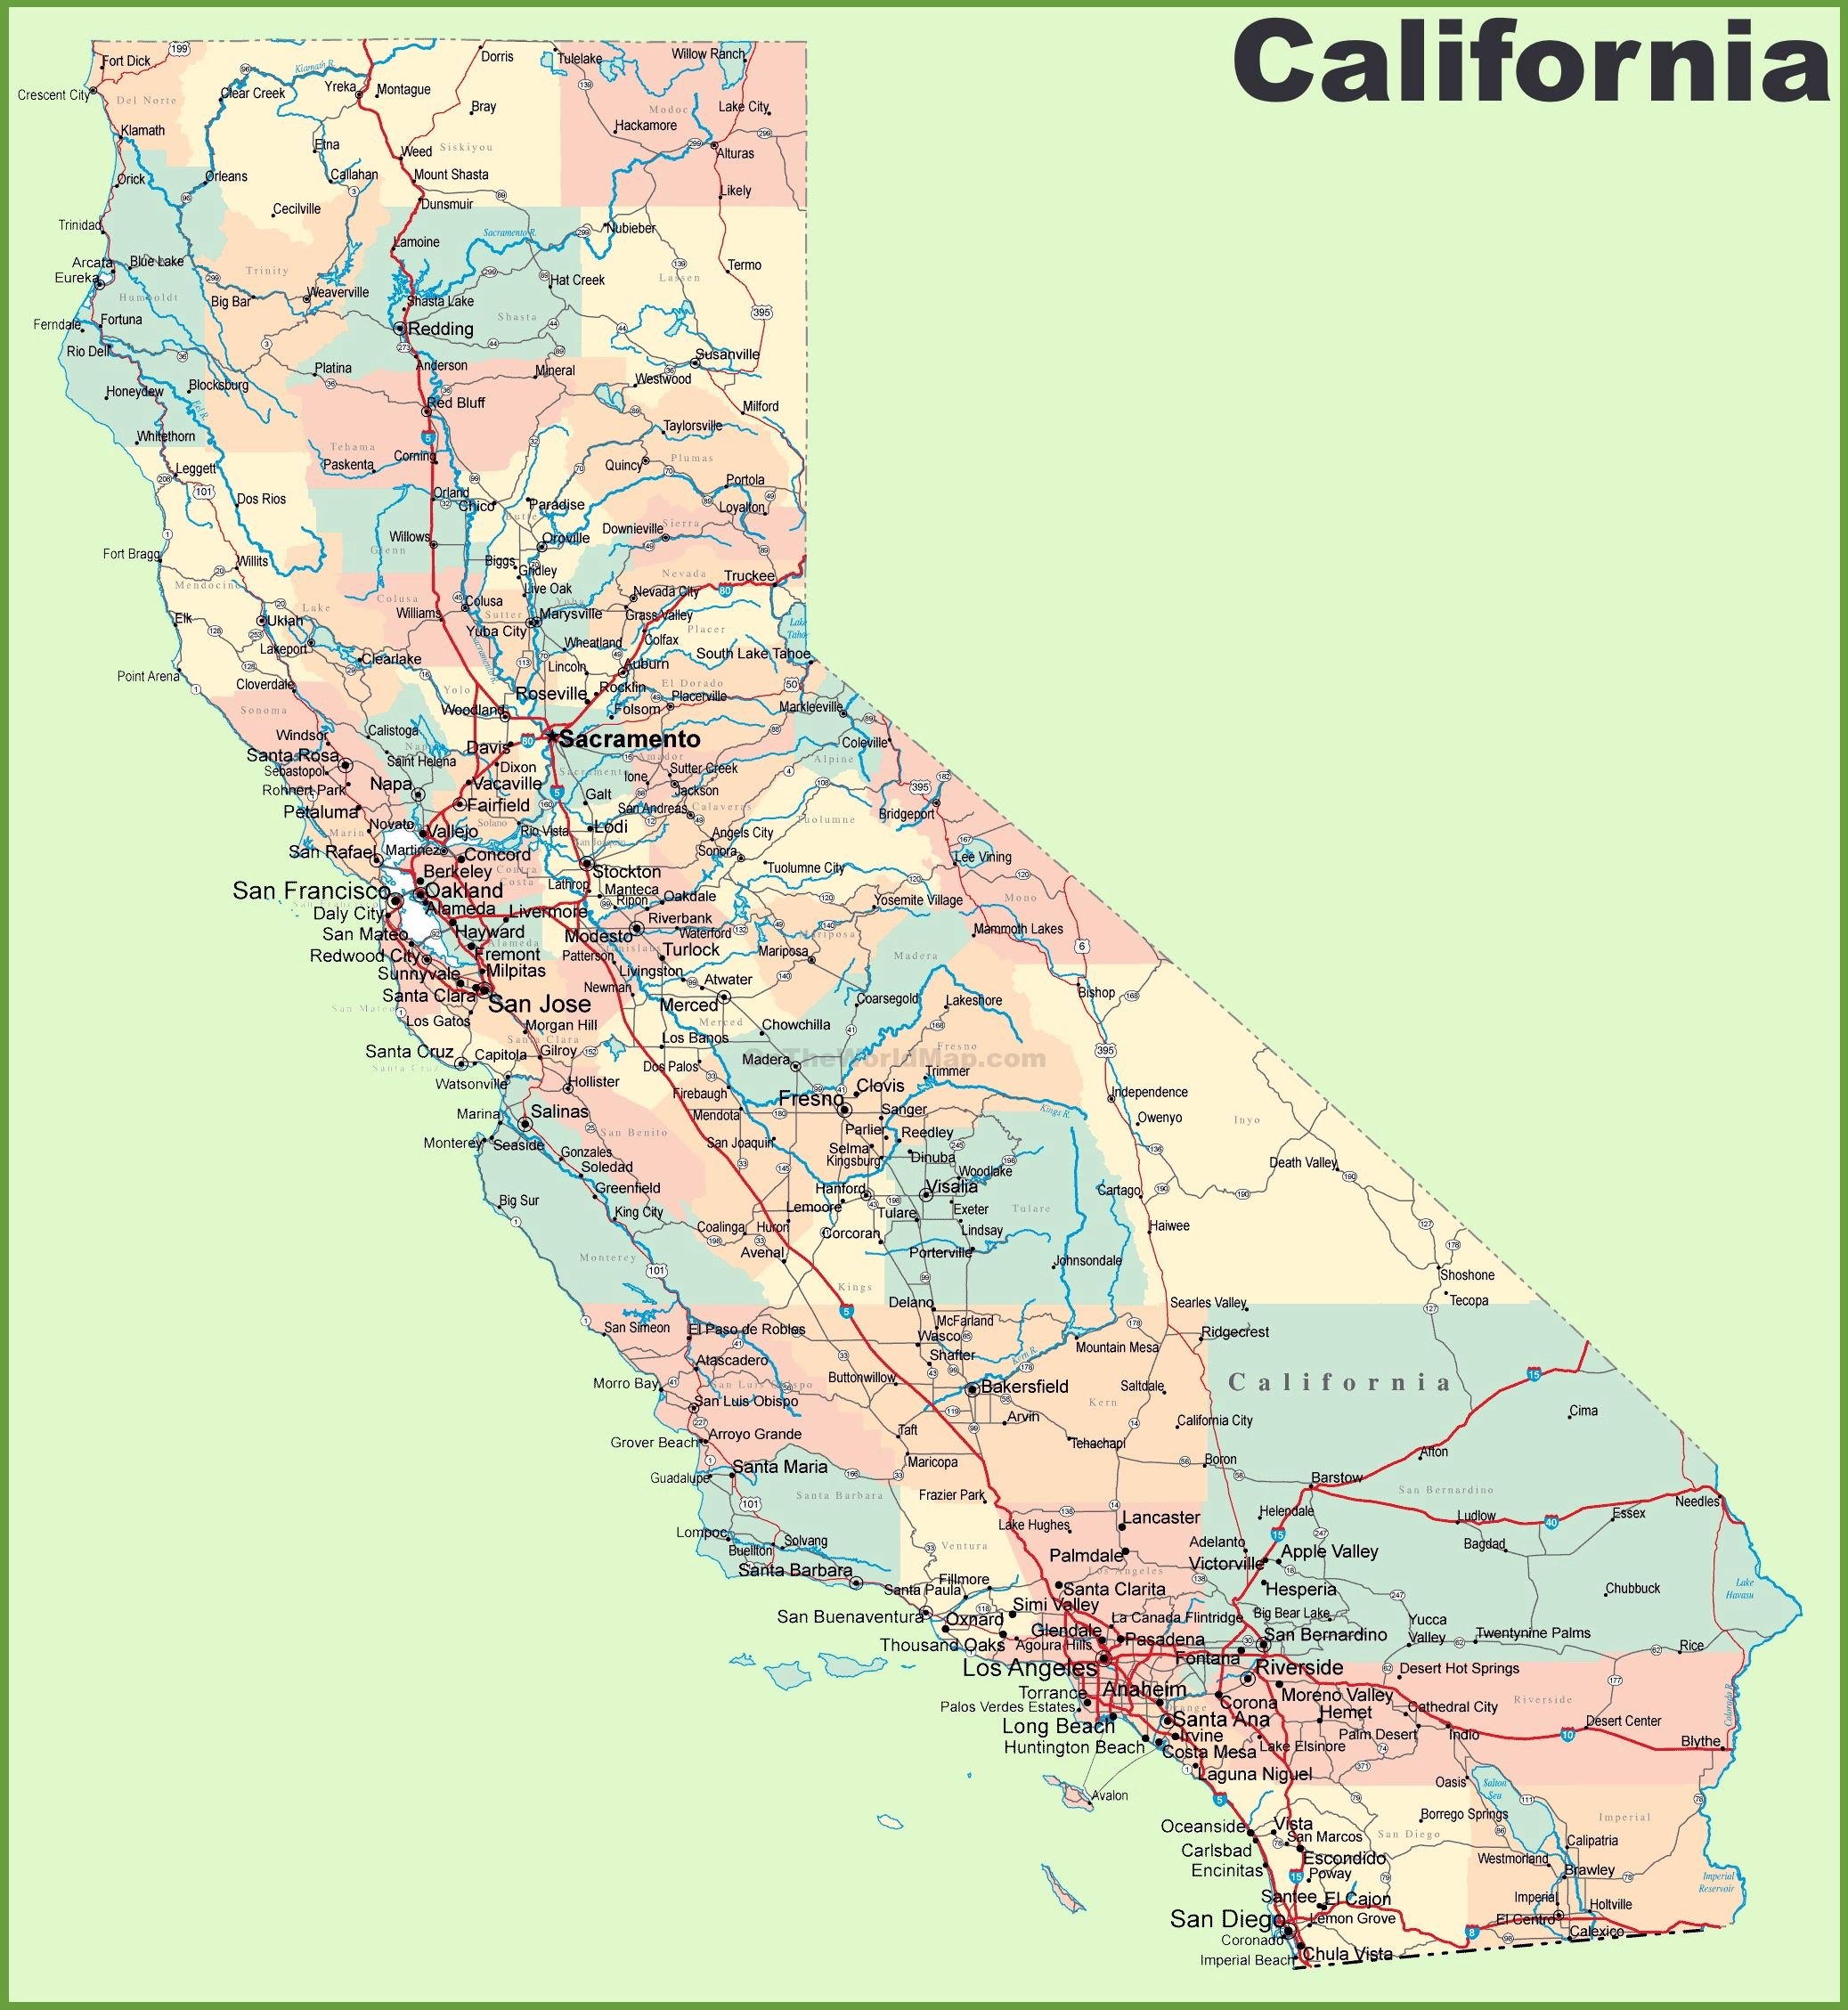 Large California Maps For Free Download And Print | High-Resolution - California Map Print